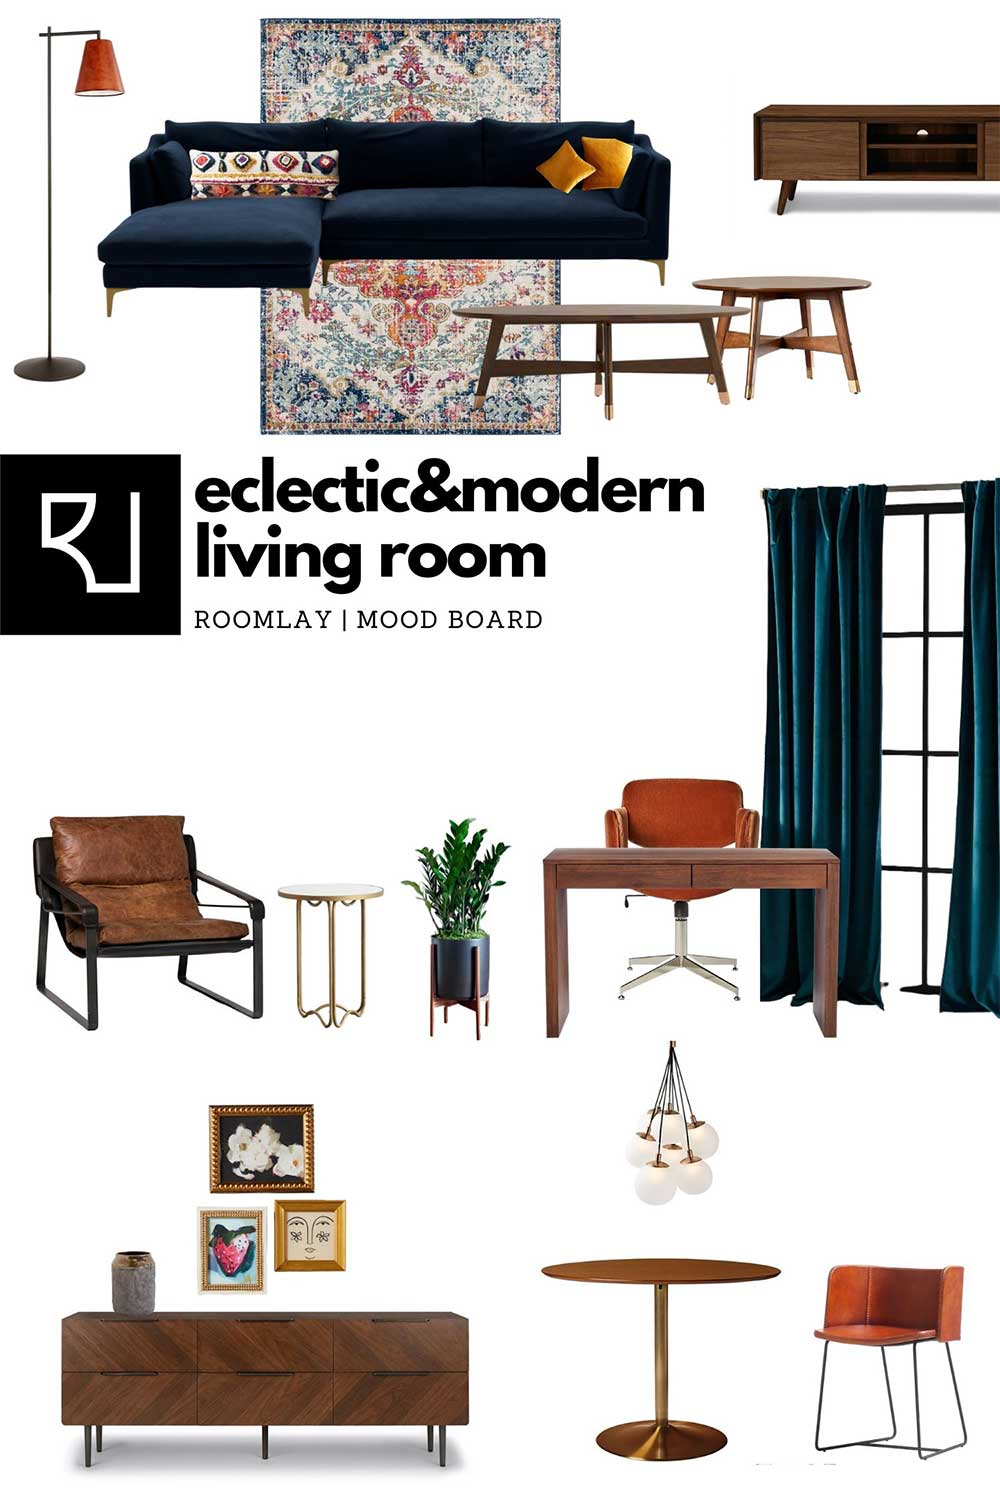 Eclectic modern living room furniture ideas